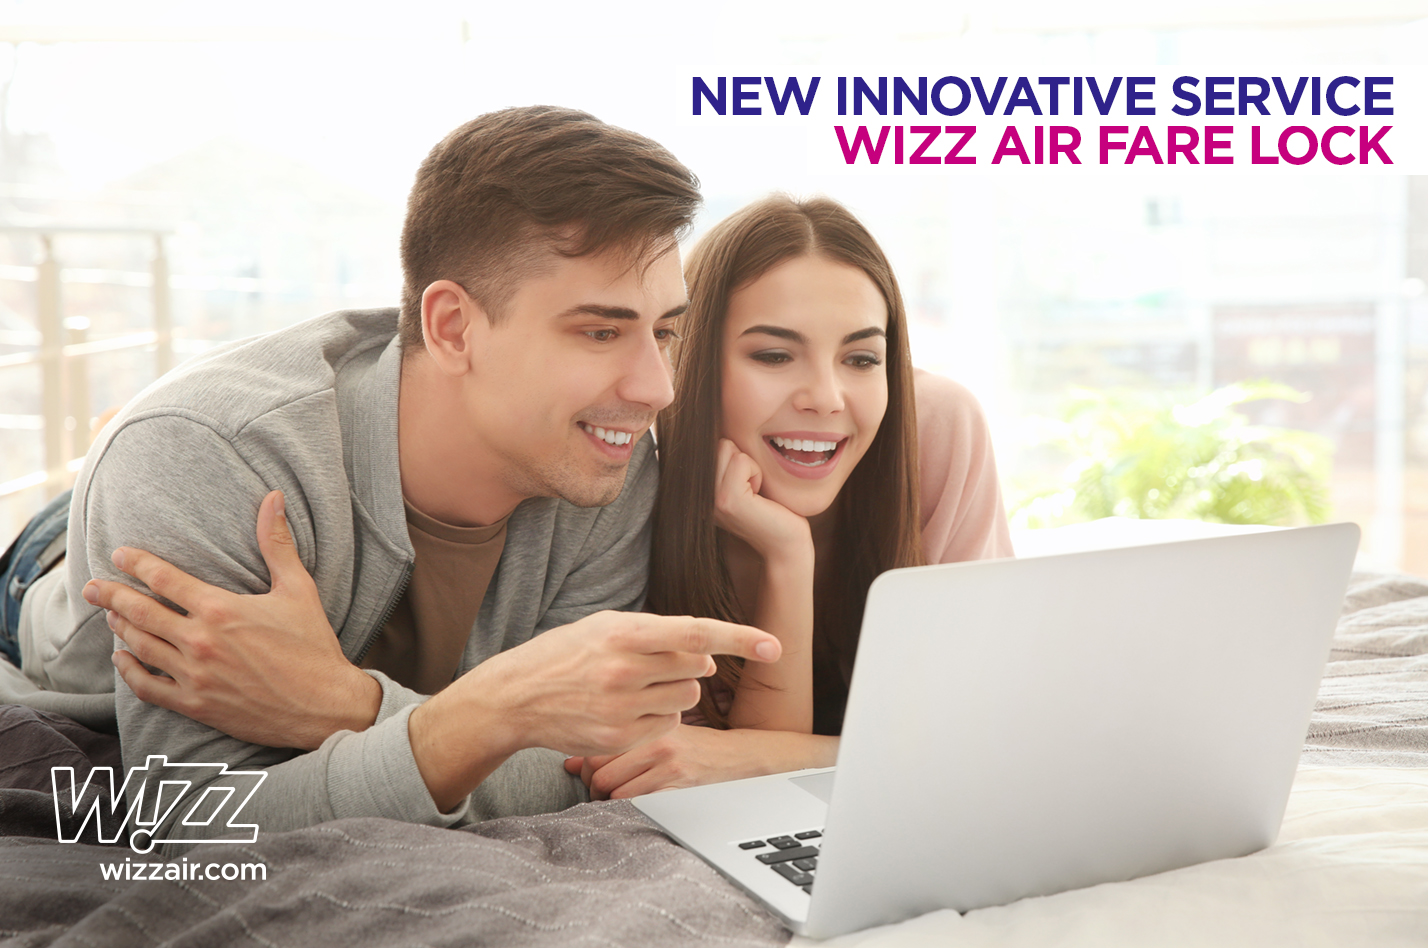 Wizz Air introduce un nou serviciu inovator: Fare Lock